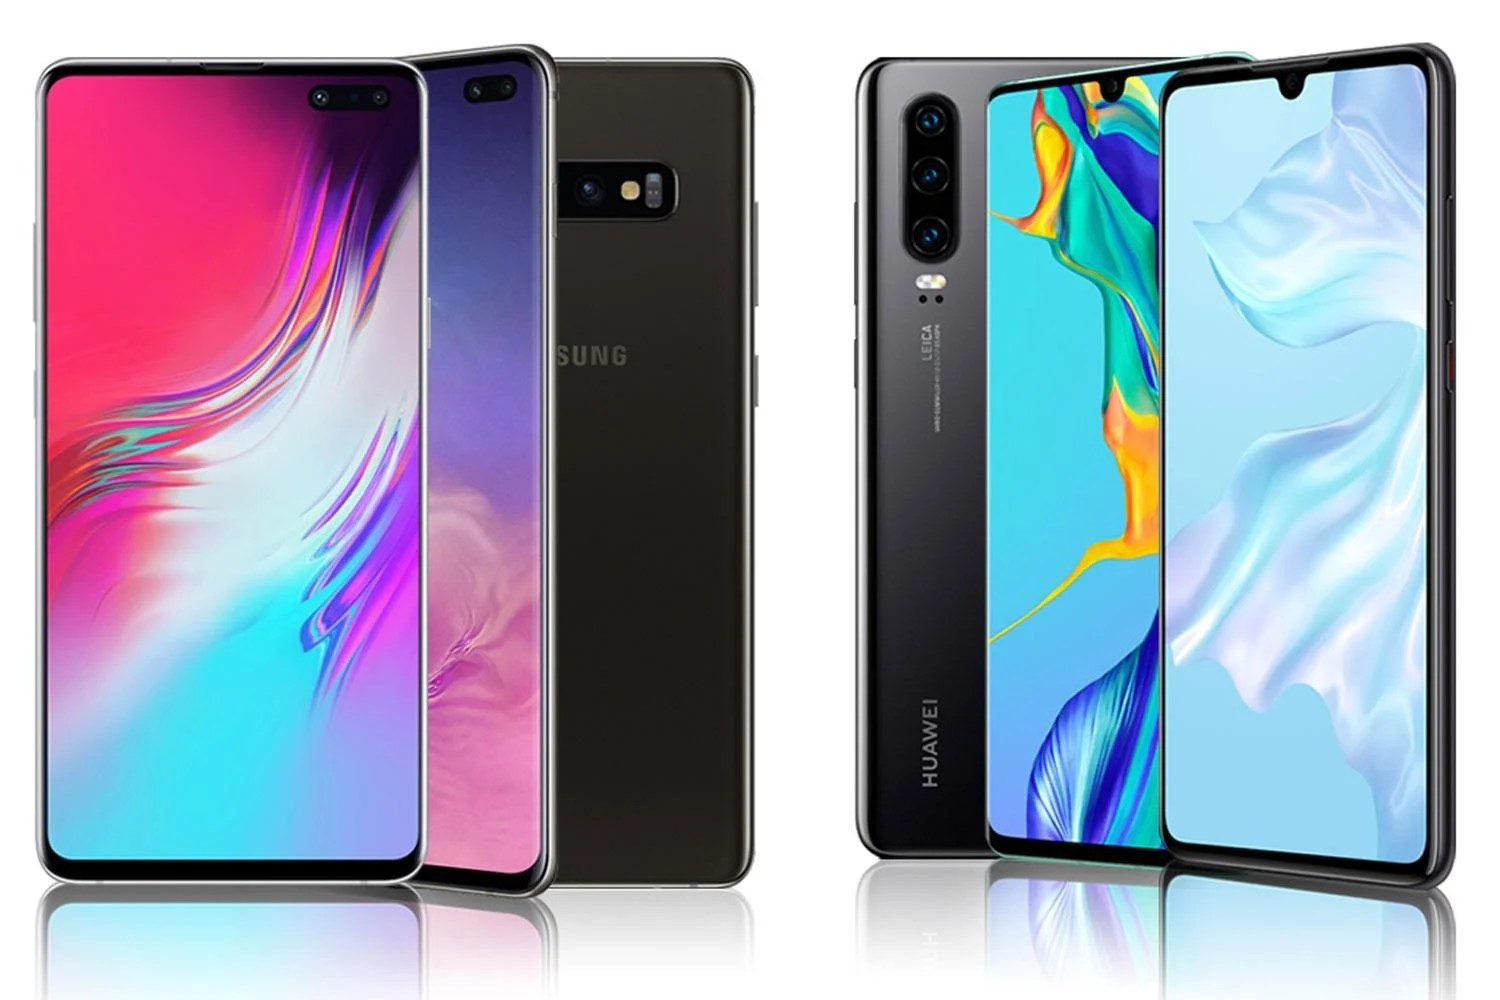 Huawei P30 And Samsung Galaxy S10 Compared Specs Design